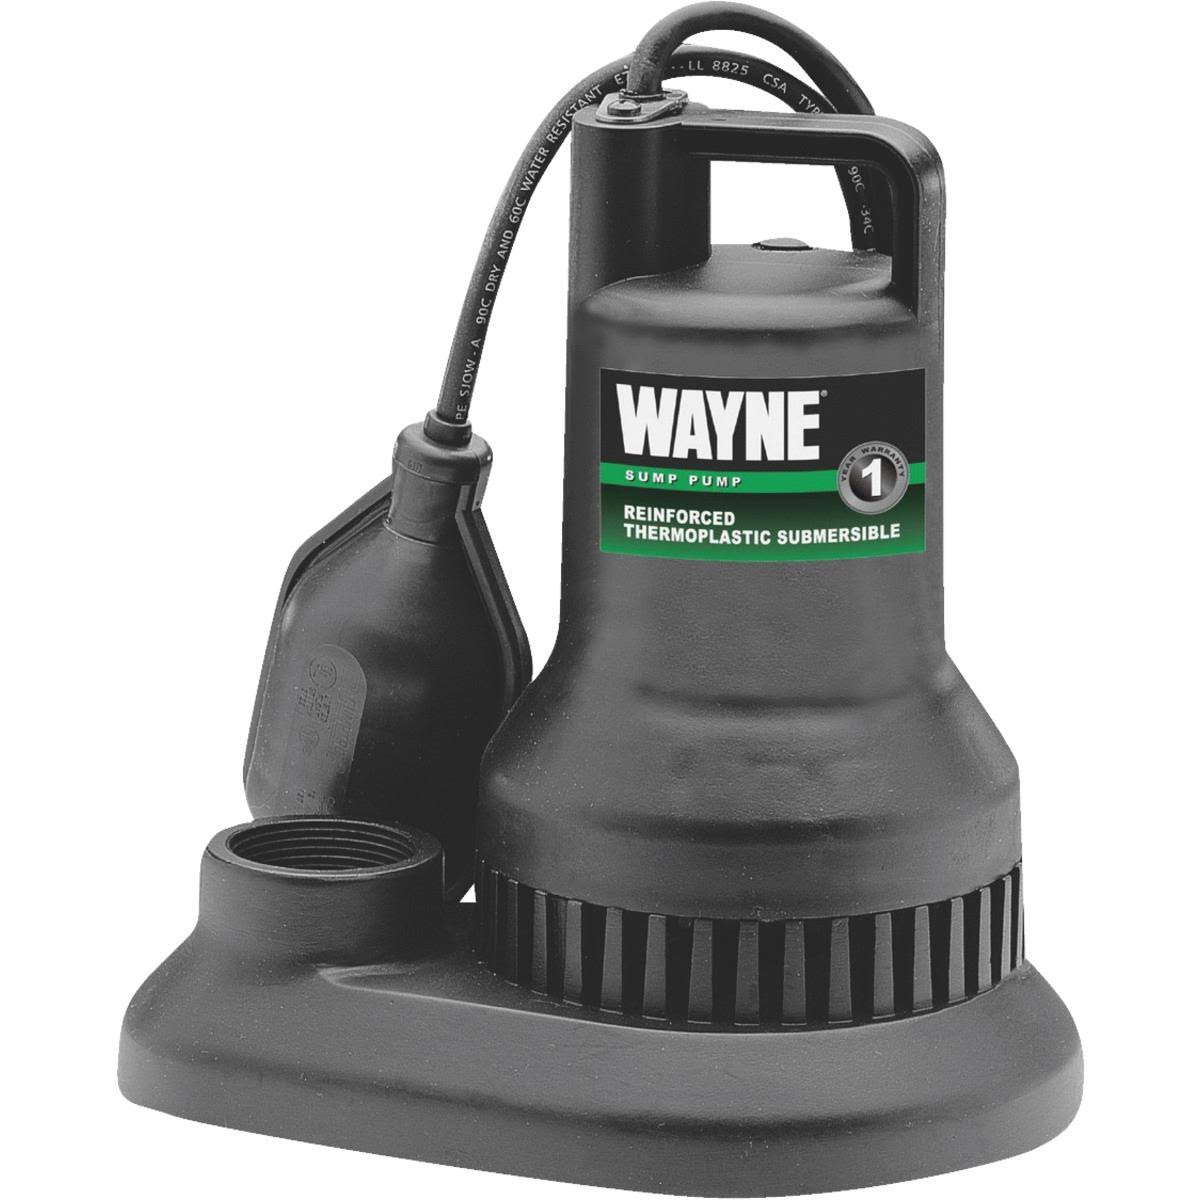 Wayne wst33 Reinforced Thermoplastic Submersible Sump Pump - 1/3HP